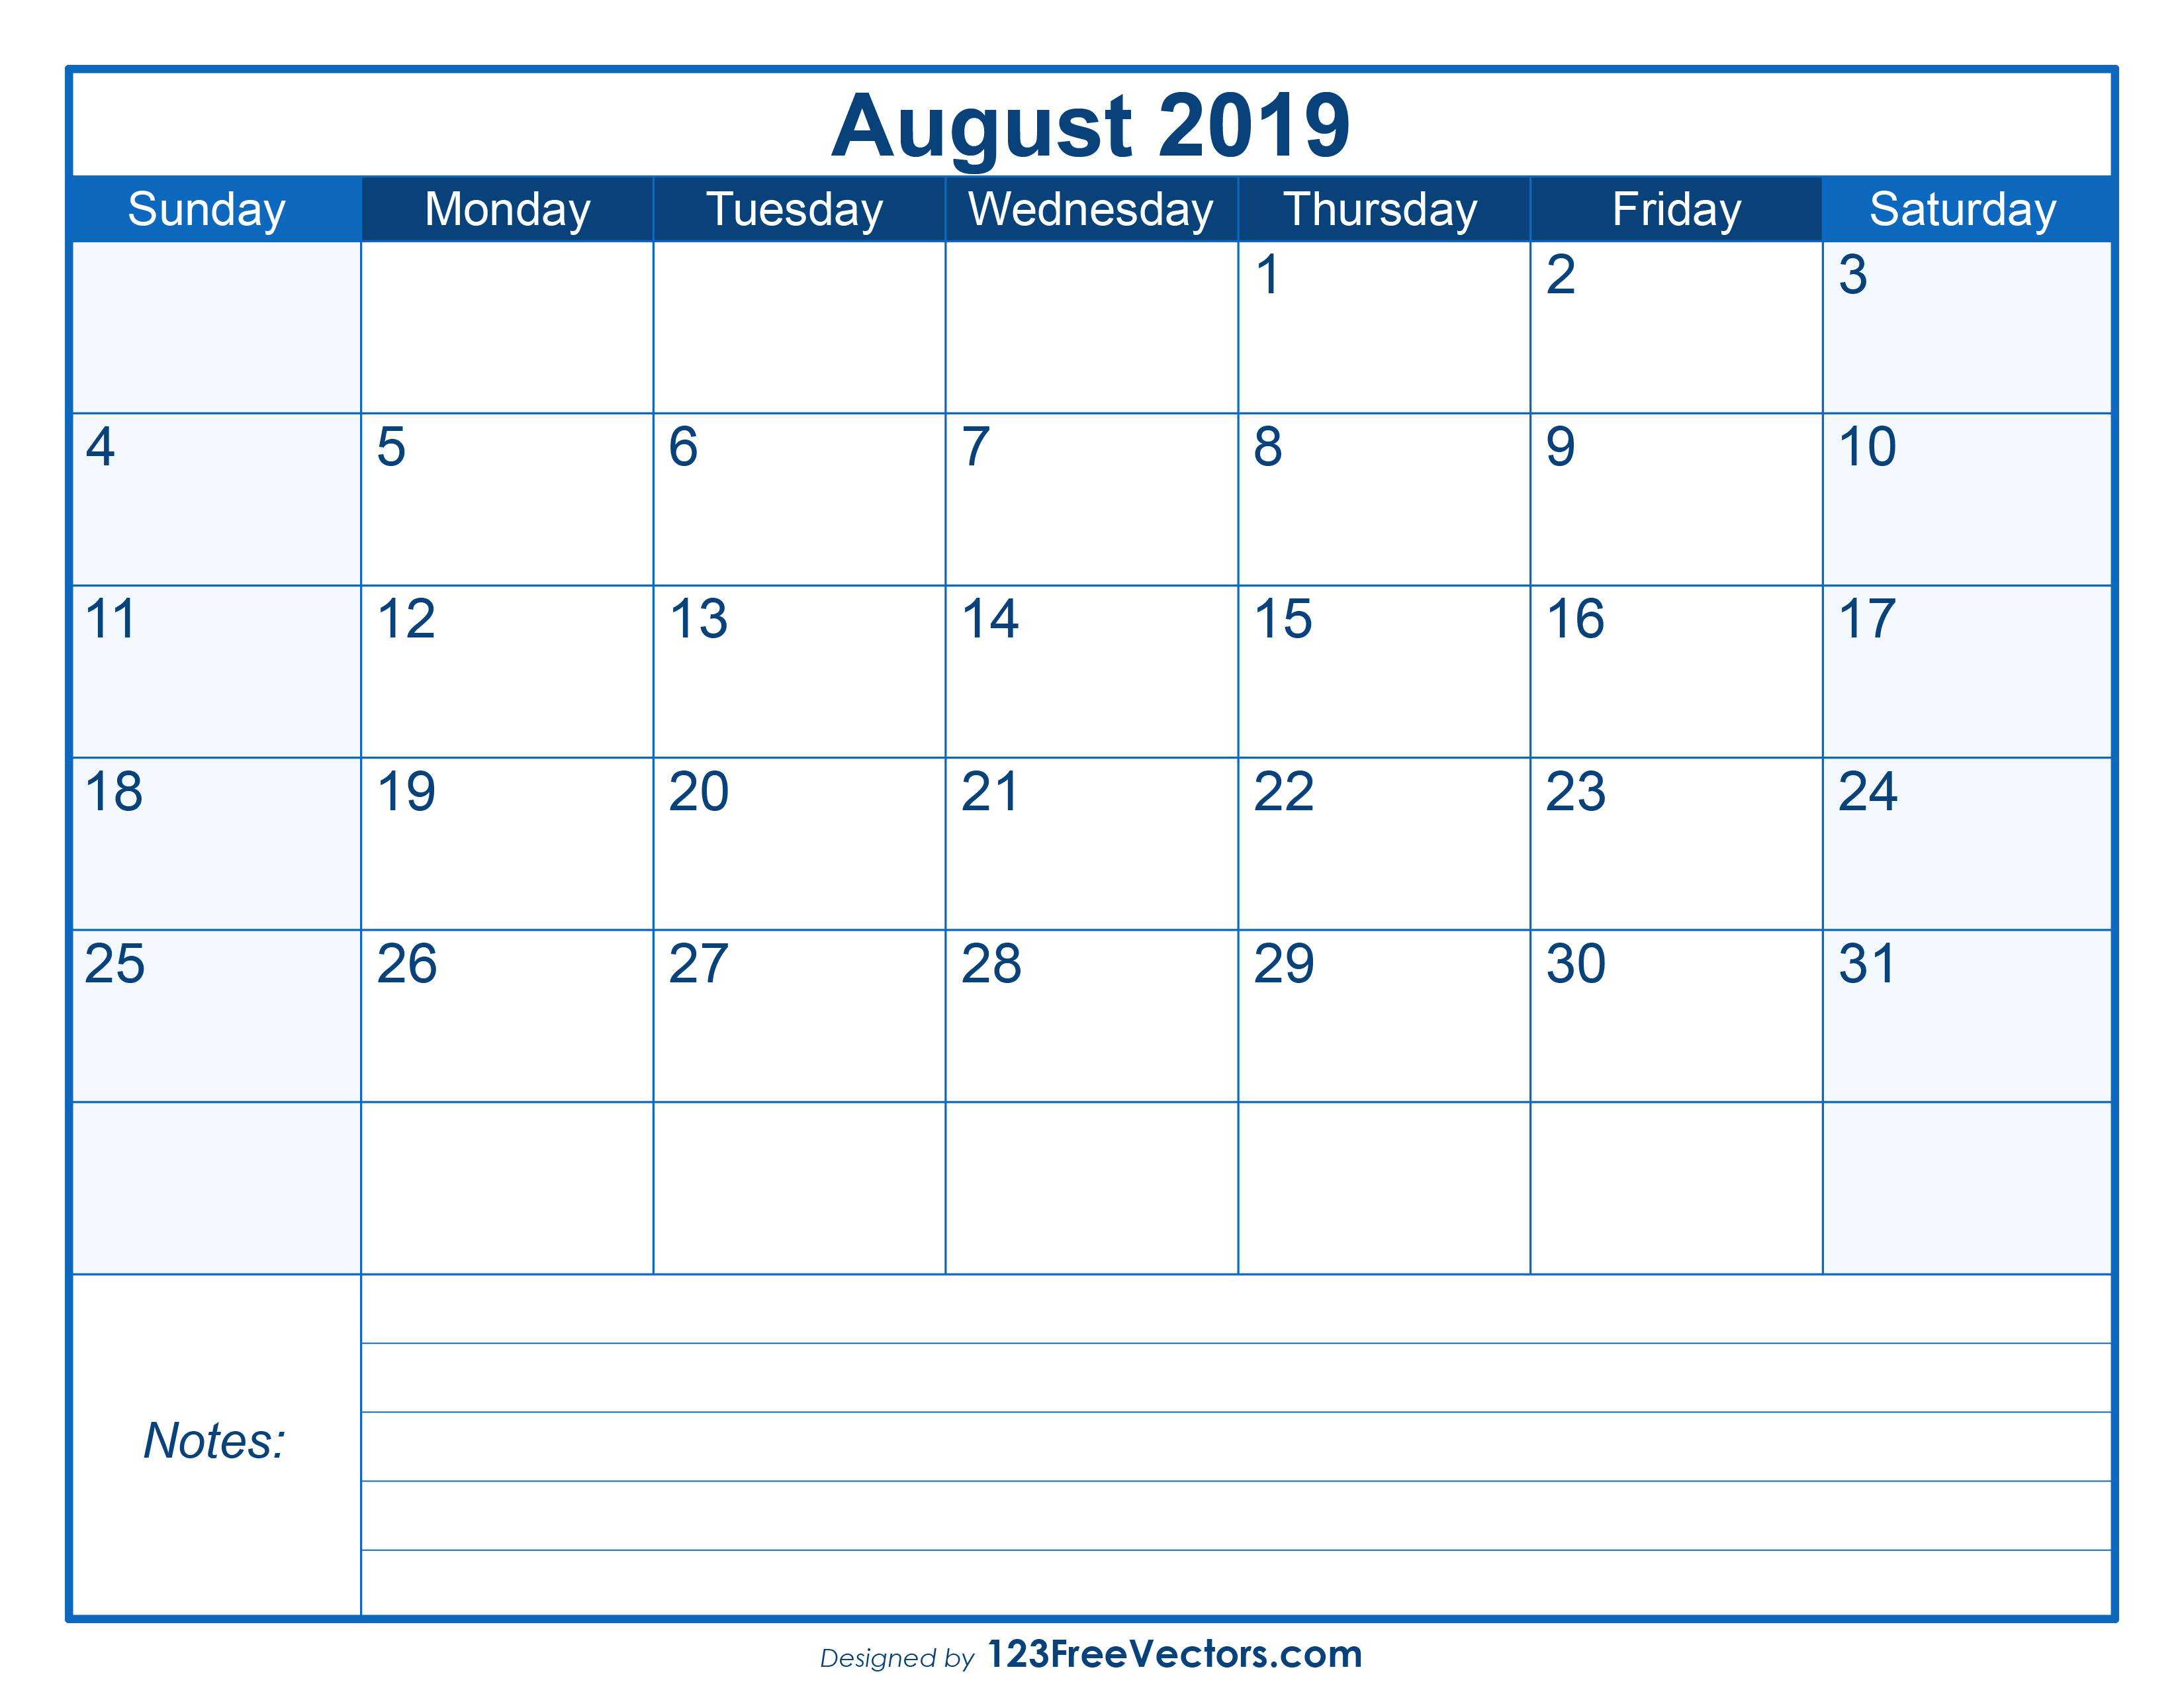 photograph relating to Free Printable August Calendar identified as Blank Printable August Calendar 2019